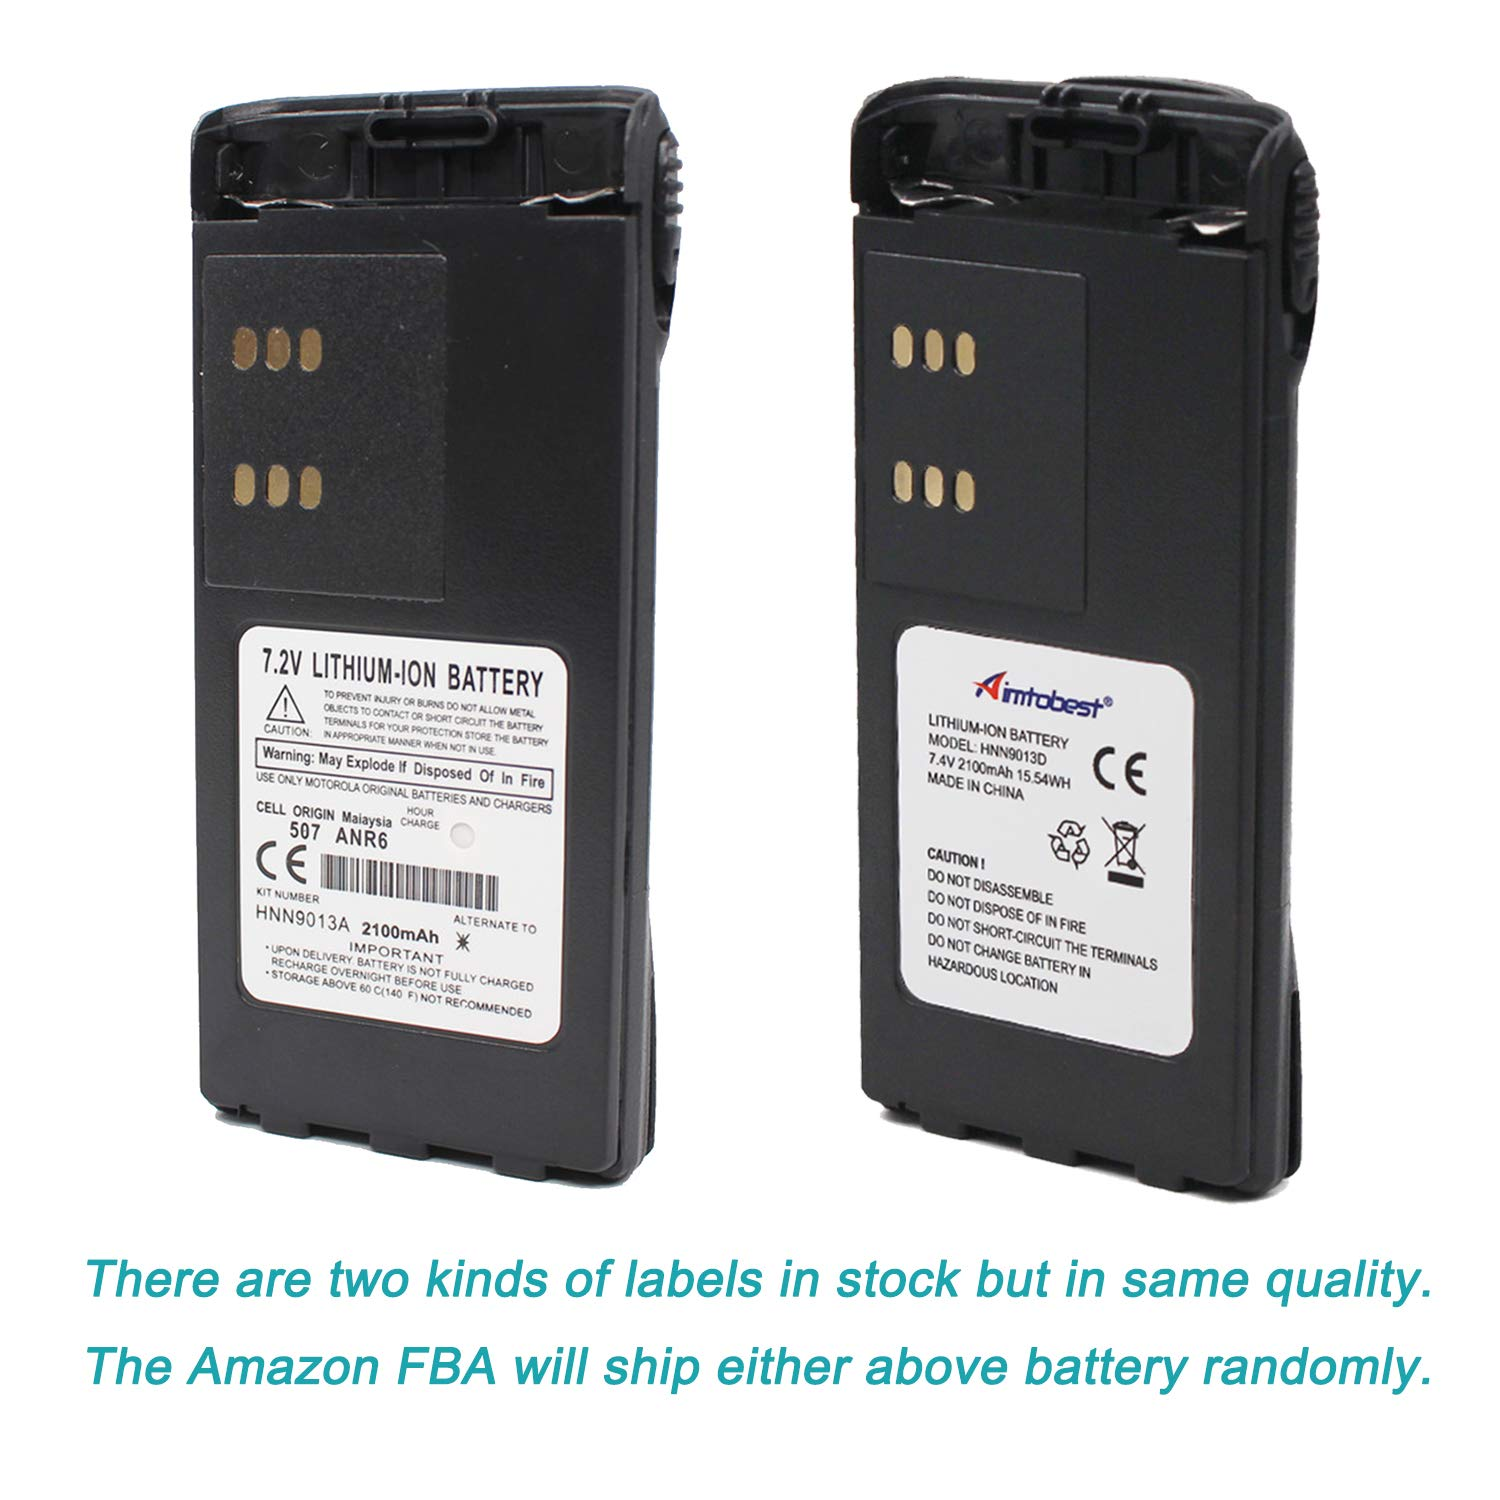 amazon com amotionergy hnn9013 hnn9013d 2100mah li ion battery rh amazon com